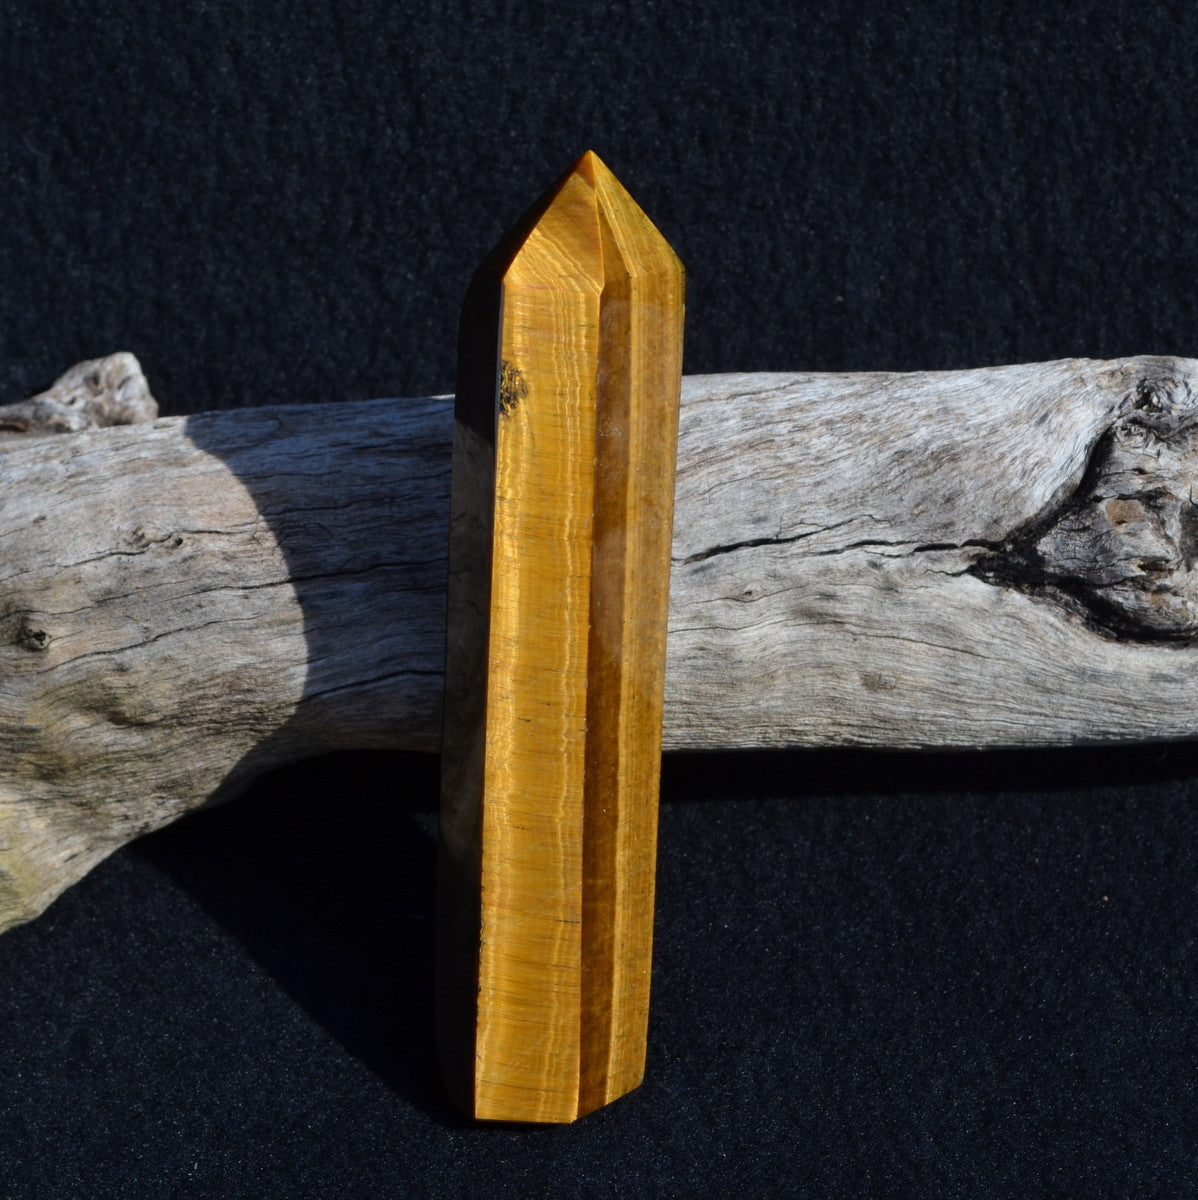 Tiger Eye Large Polished Point Africa - Strength Courage and Protection - Shop Now at Illiom Crystals